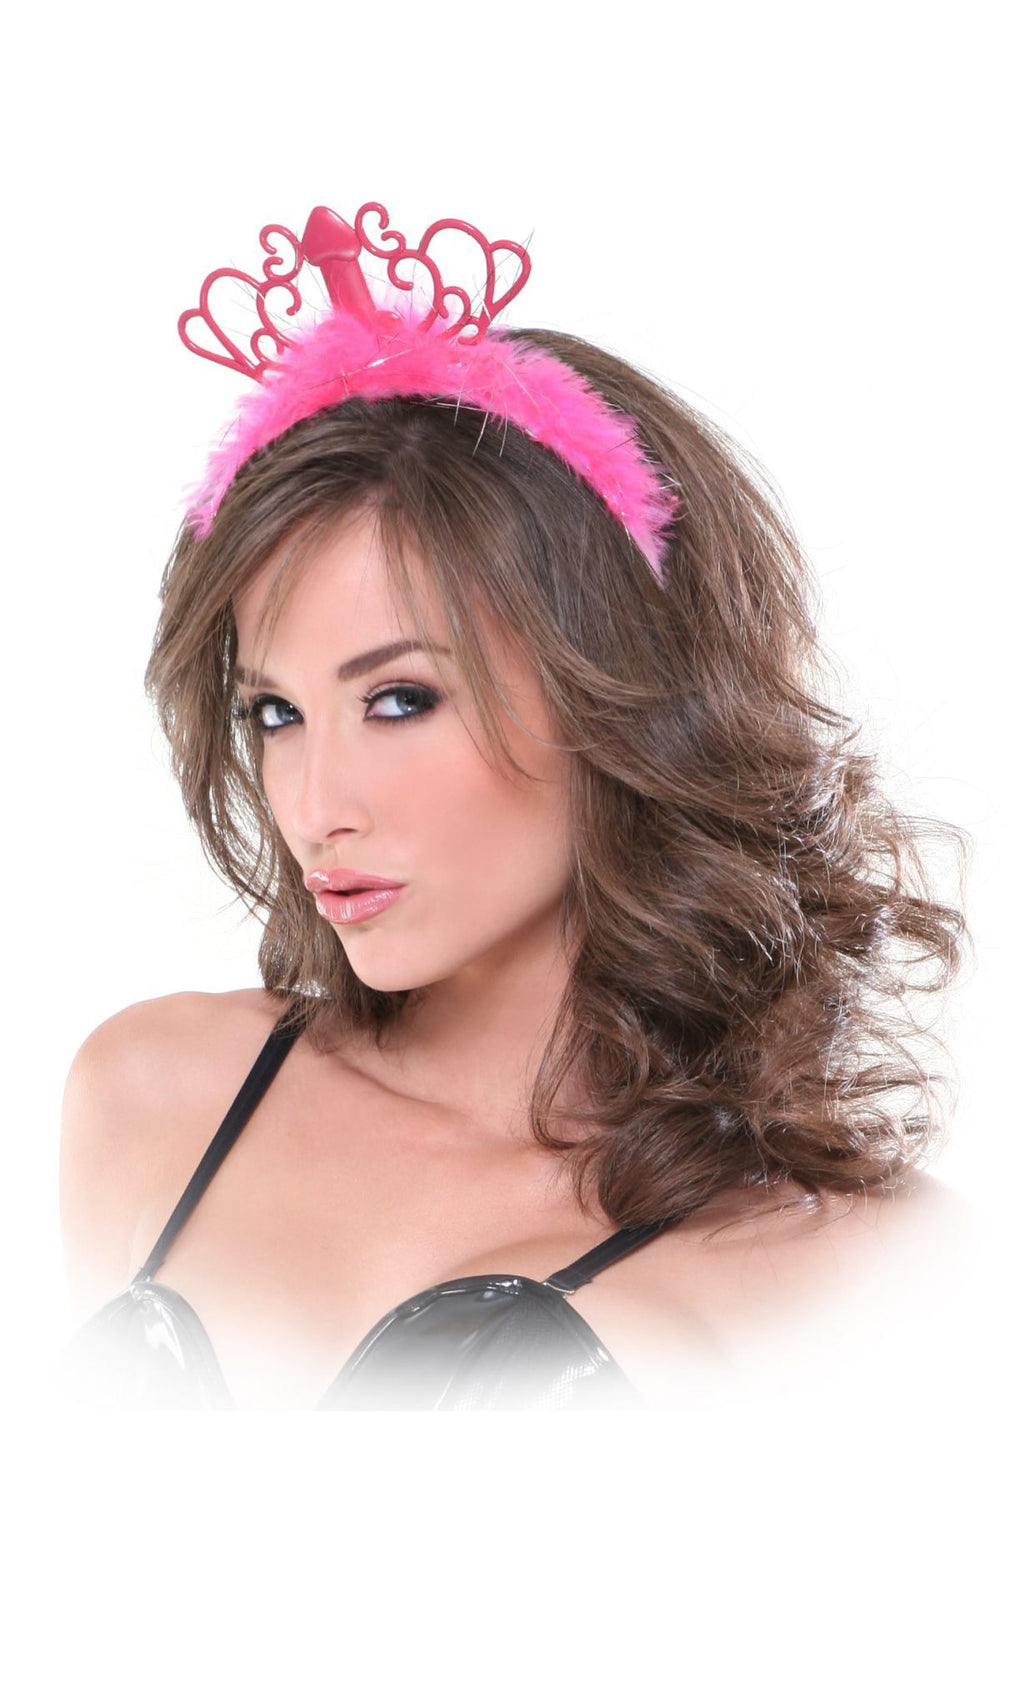 Pecker Tiara | For Her, Sex Toys, Adult Toys | My Sex Shop